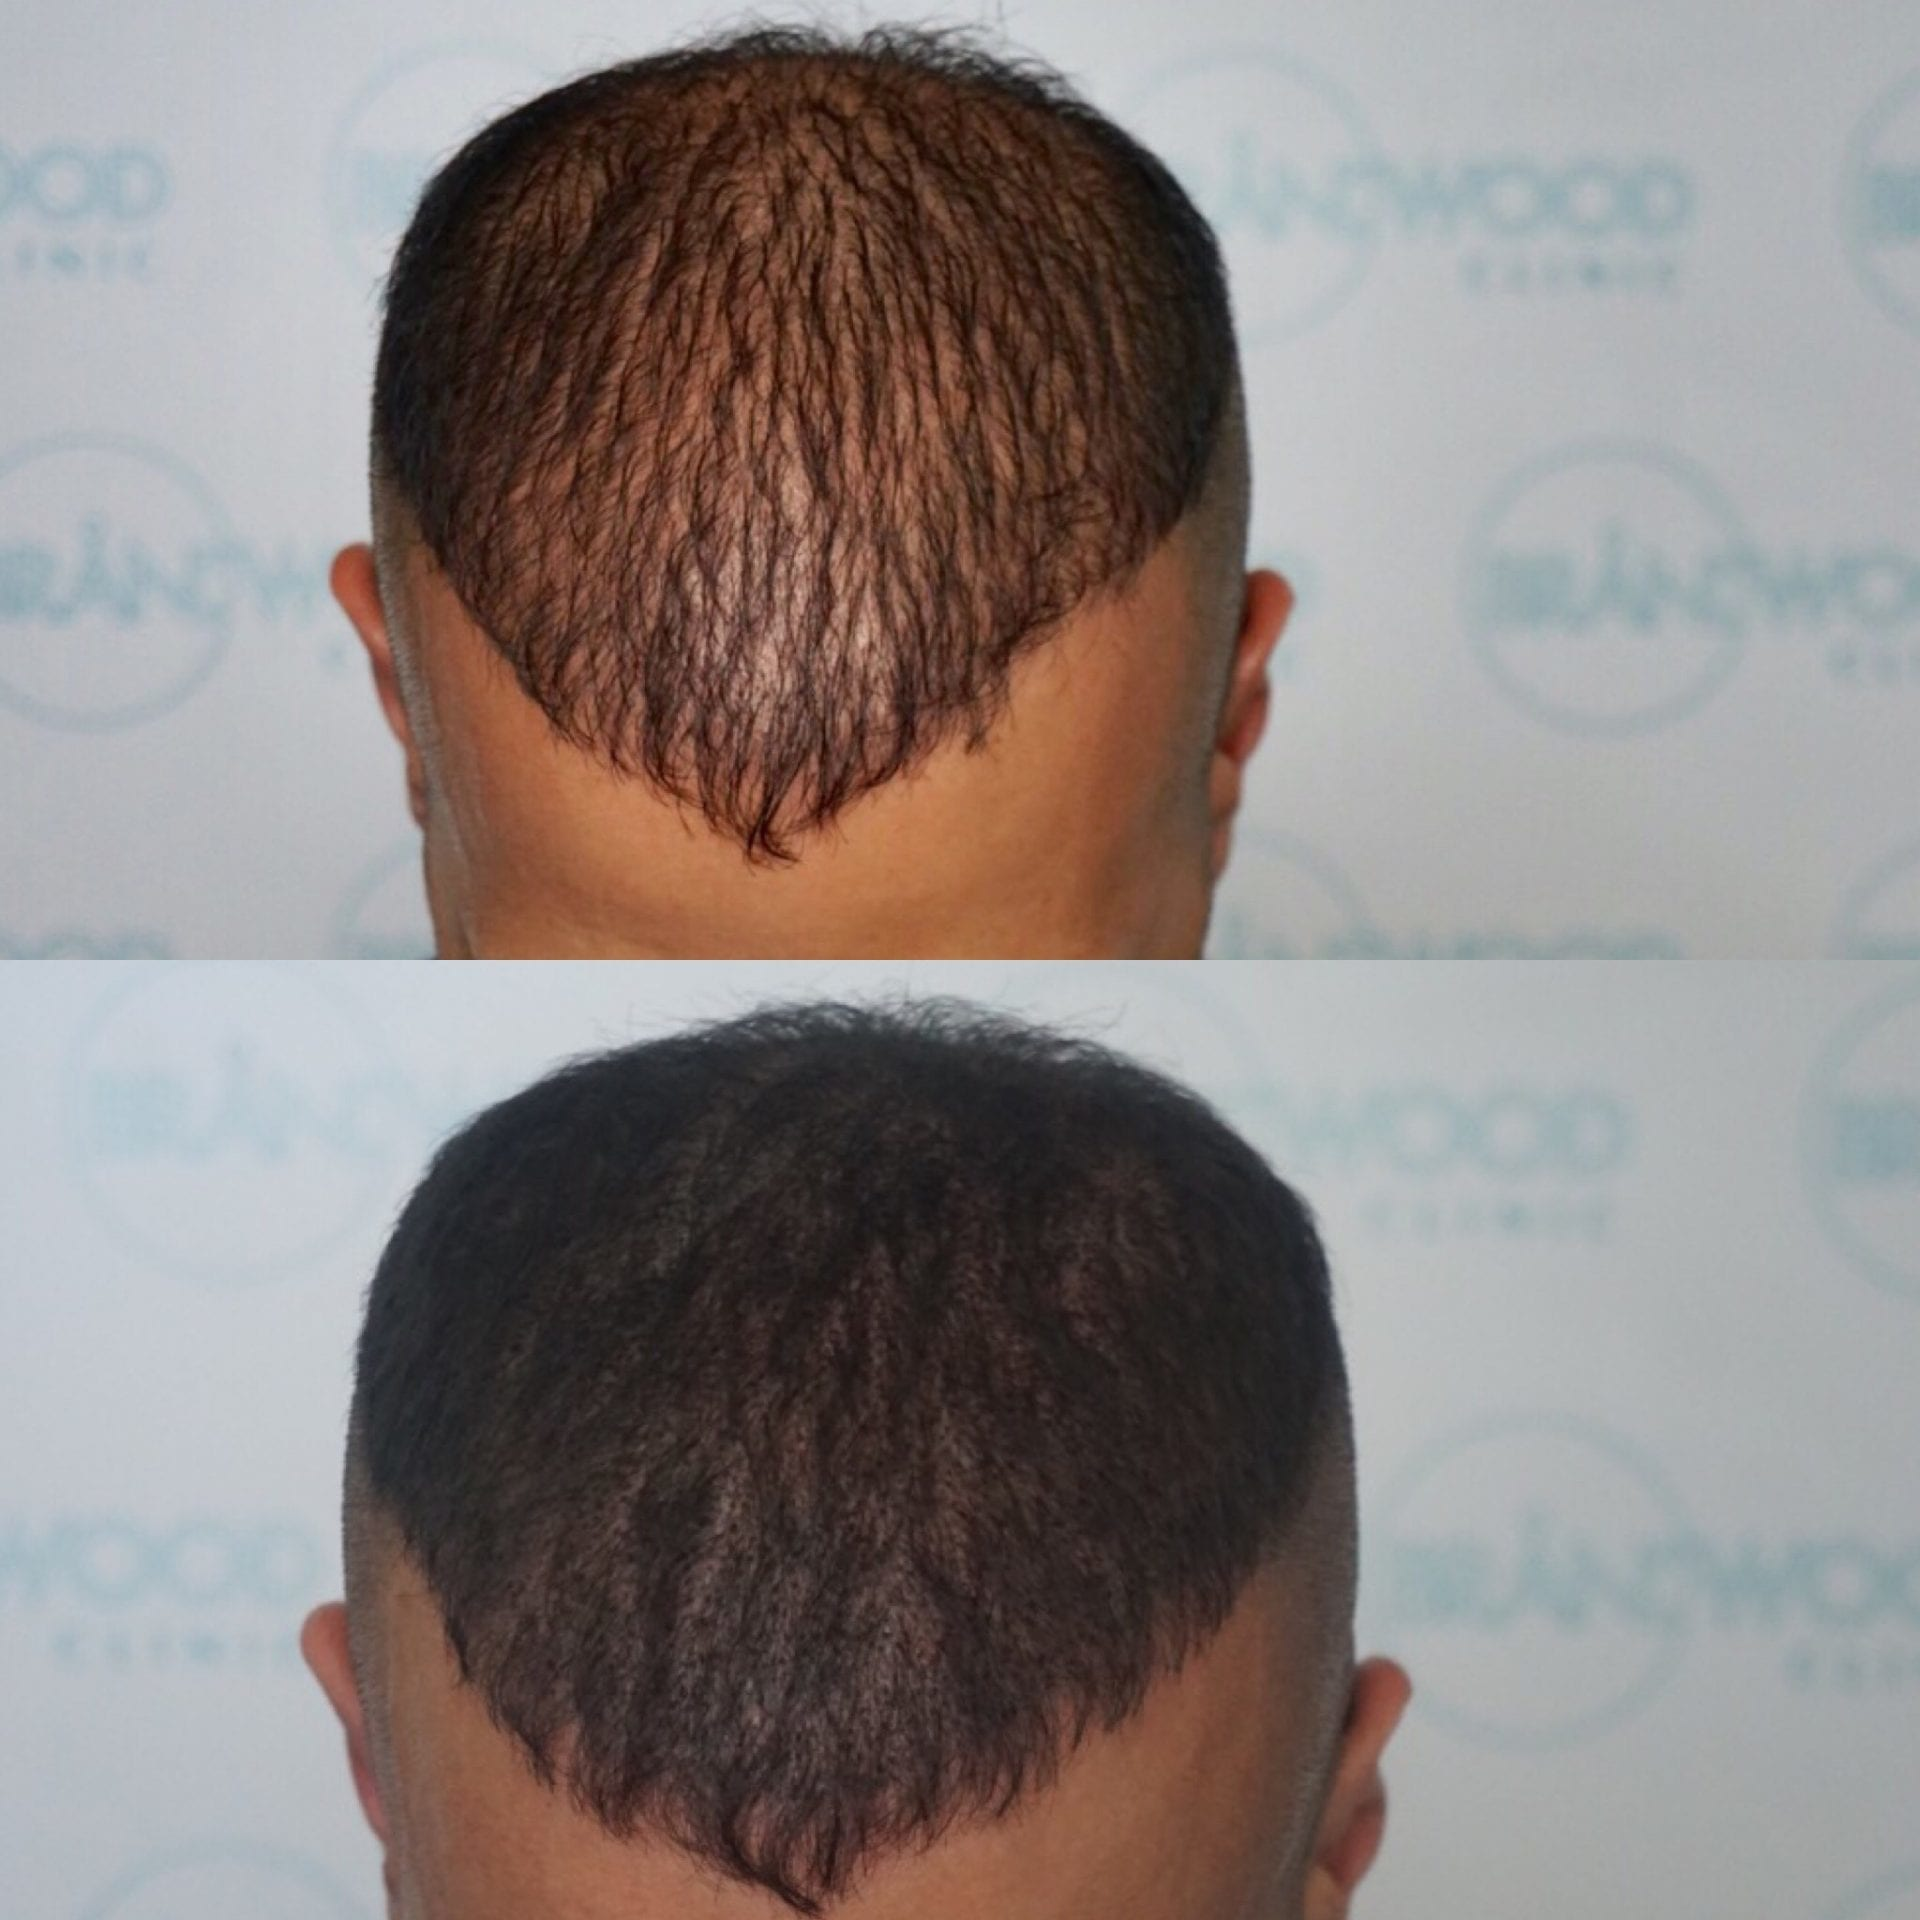 Rafi: Thinning Hair Treated with SMP